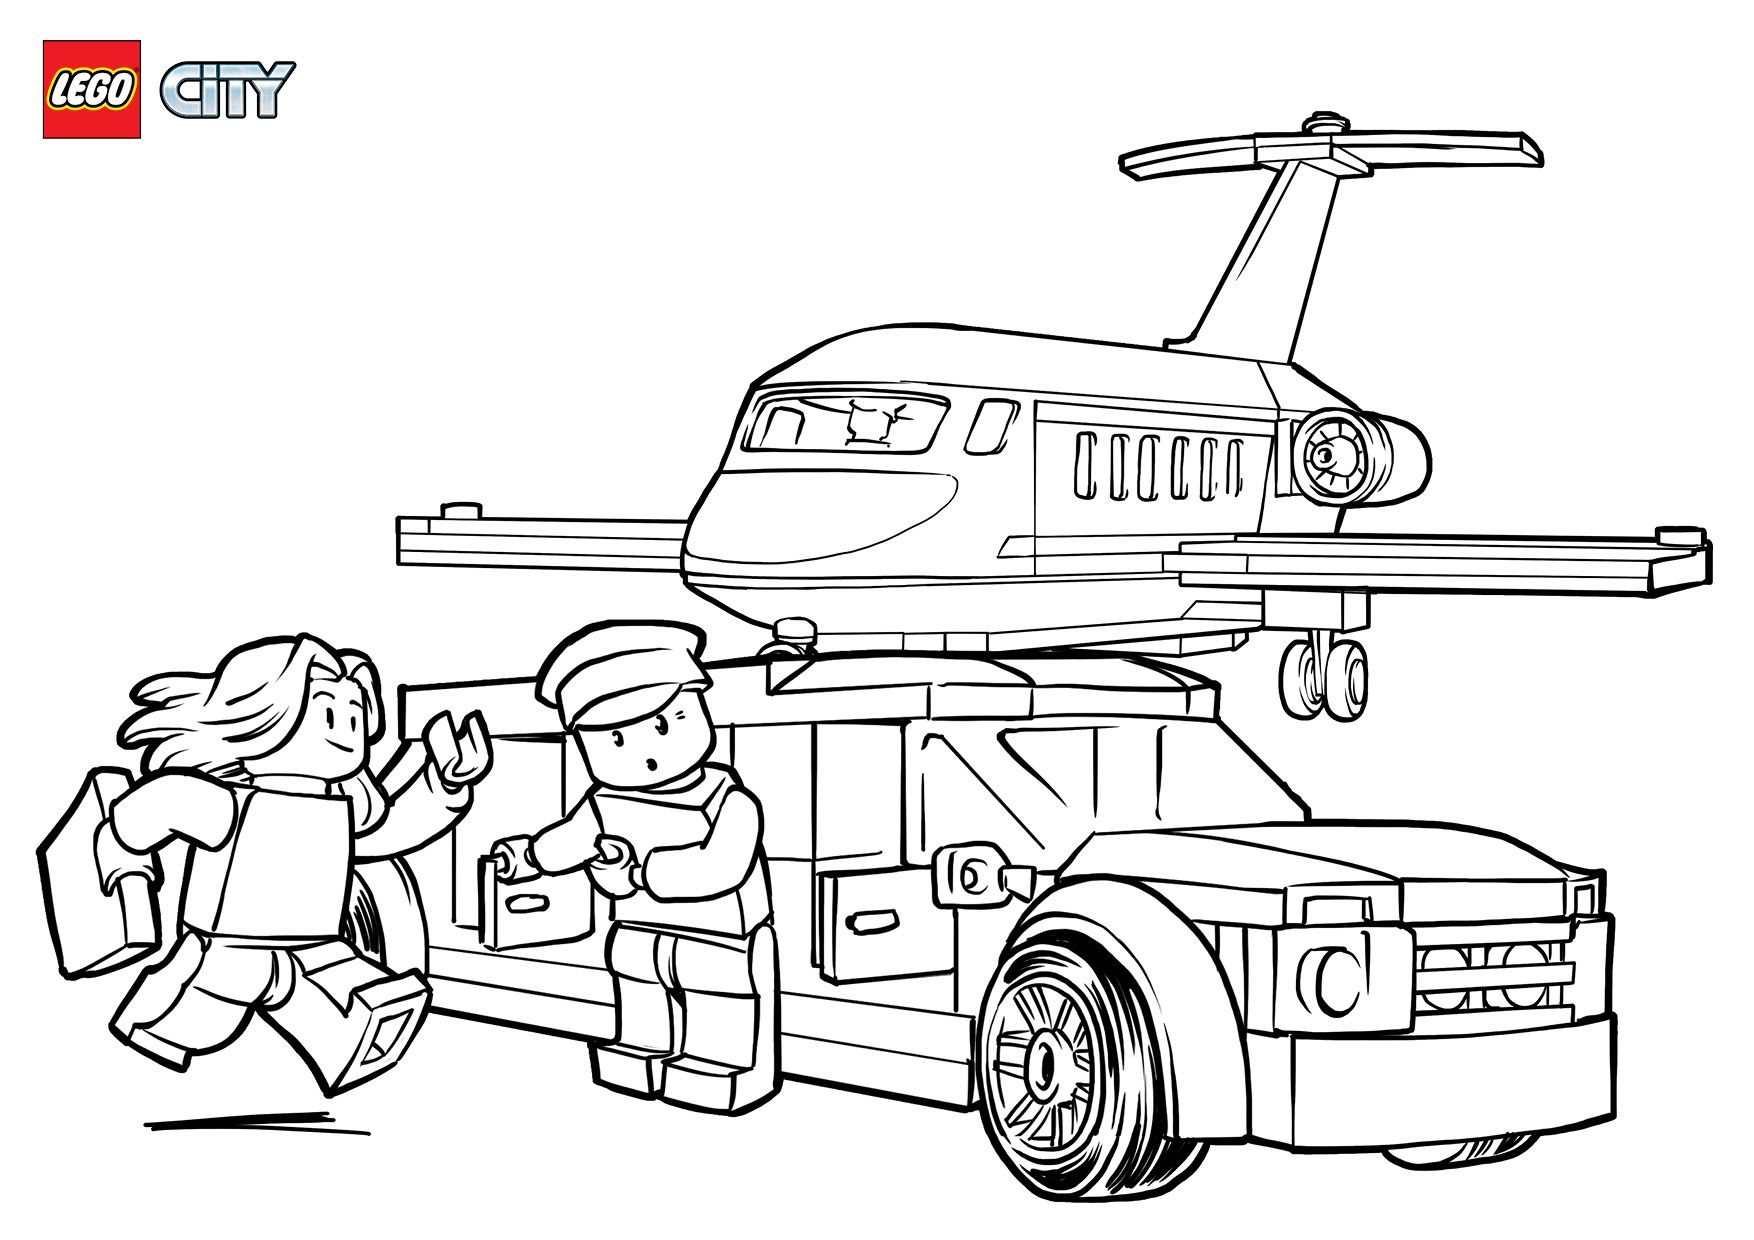 airport vip service | lego® coloring sheets | pinterest - Lego City Airplane Coloring Pages